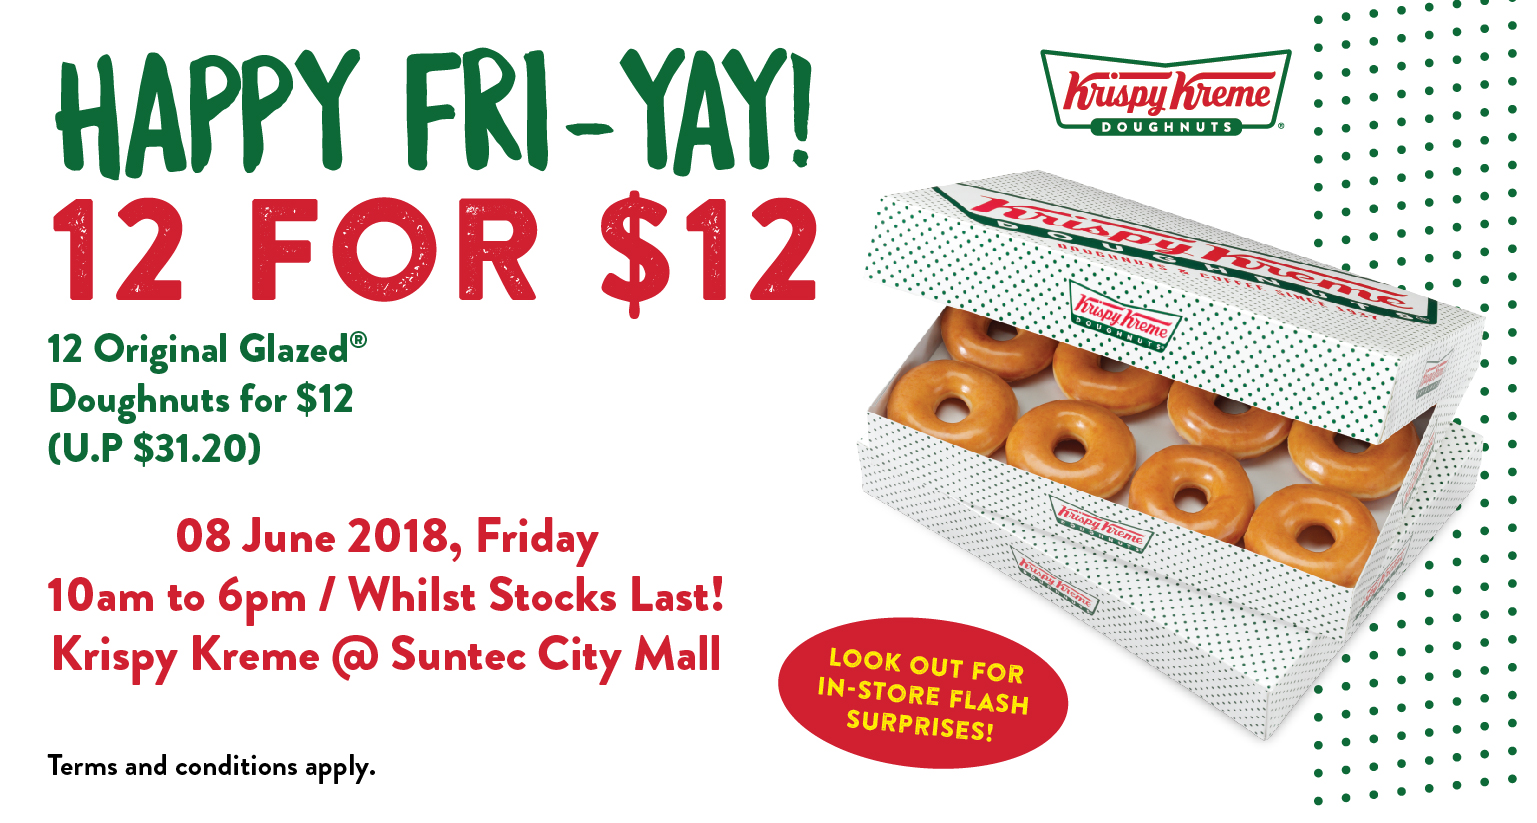 Krispy Kreme doughnut deal is back! - Suntec City